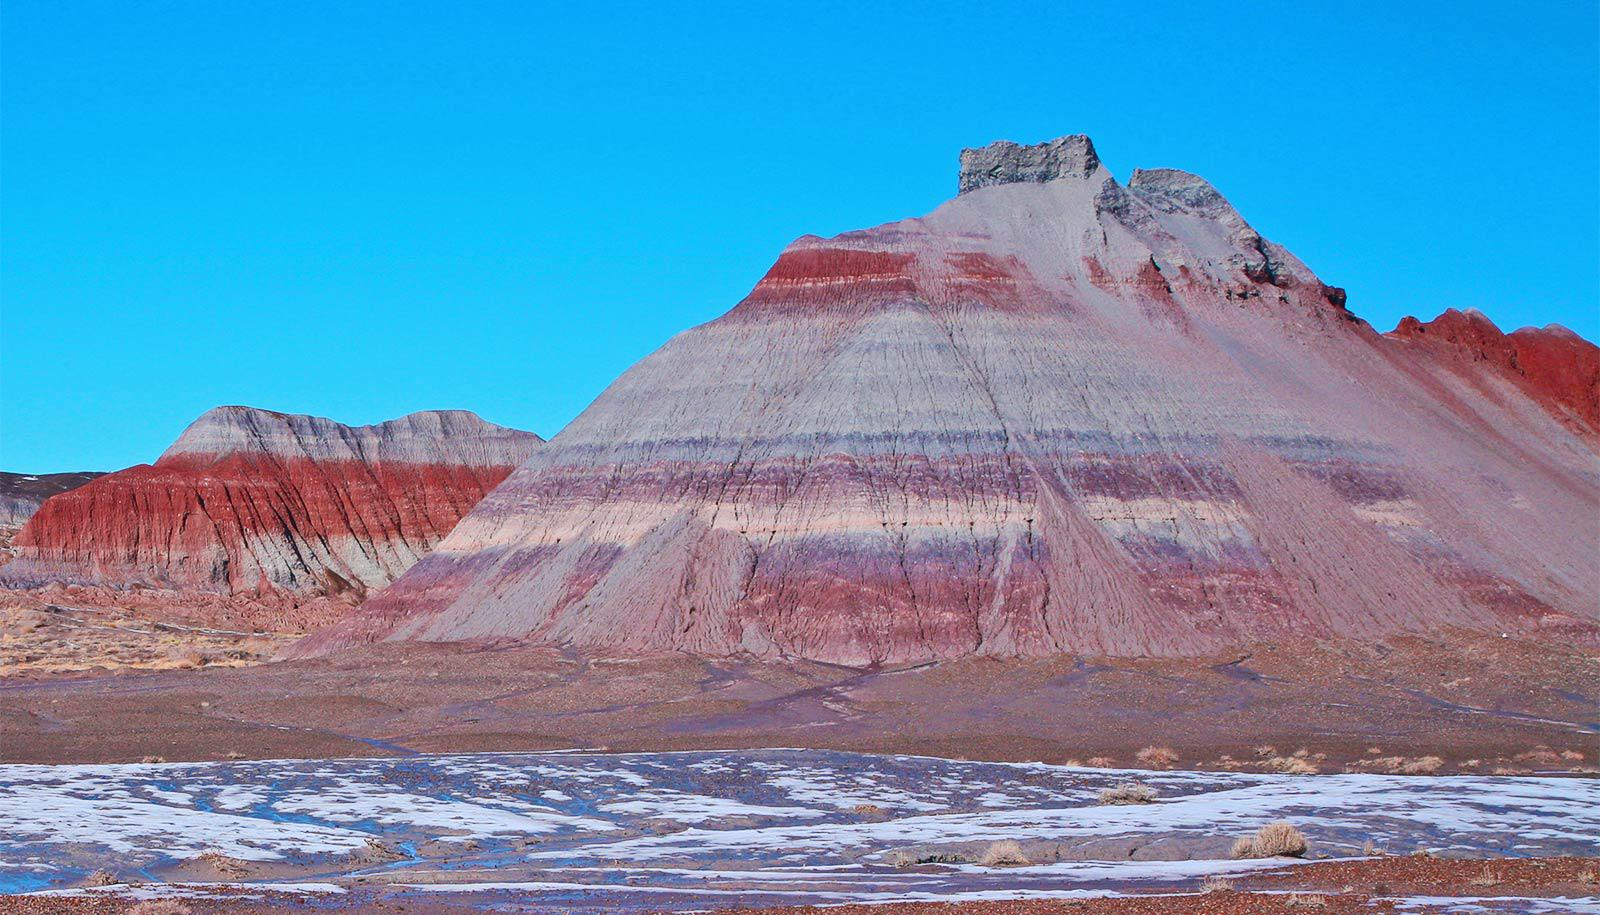 Red rocks can be seen in streaks on large, rocky hills